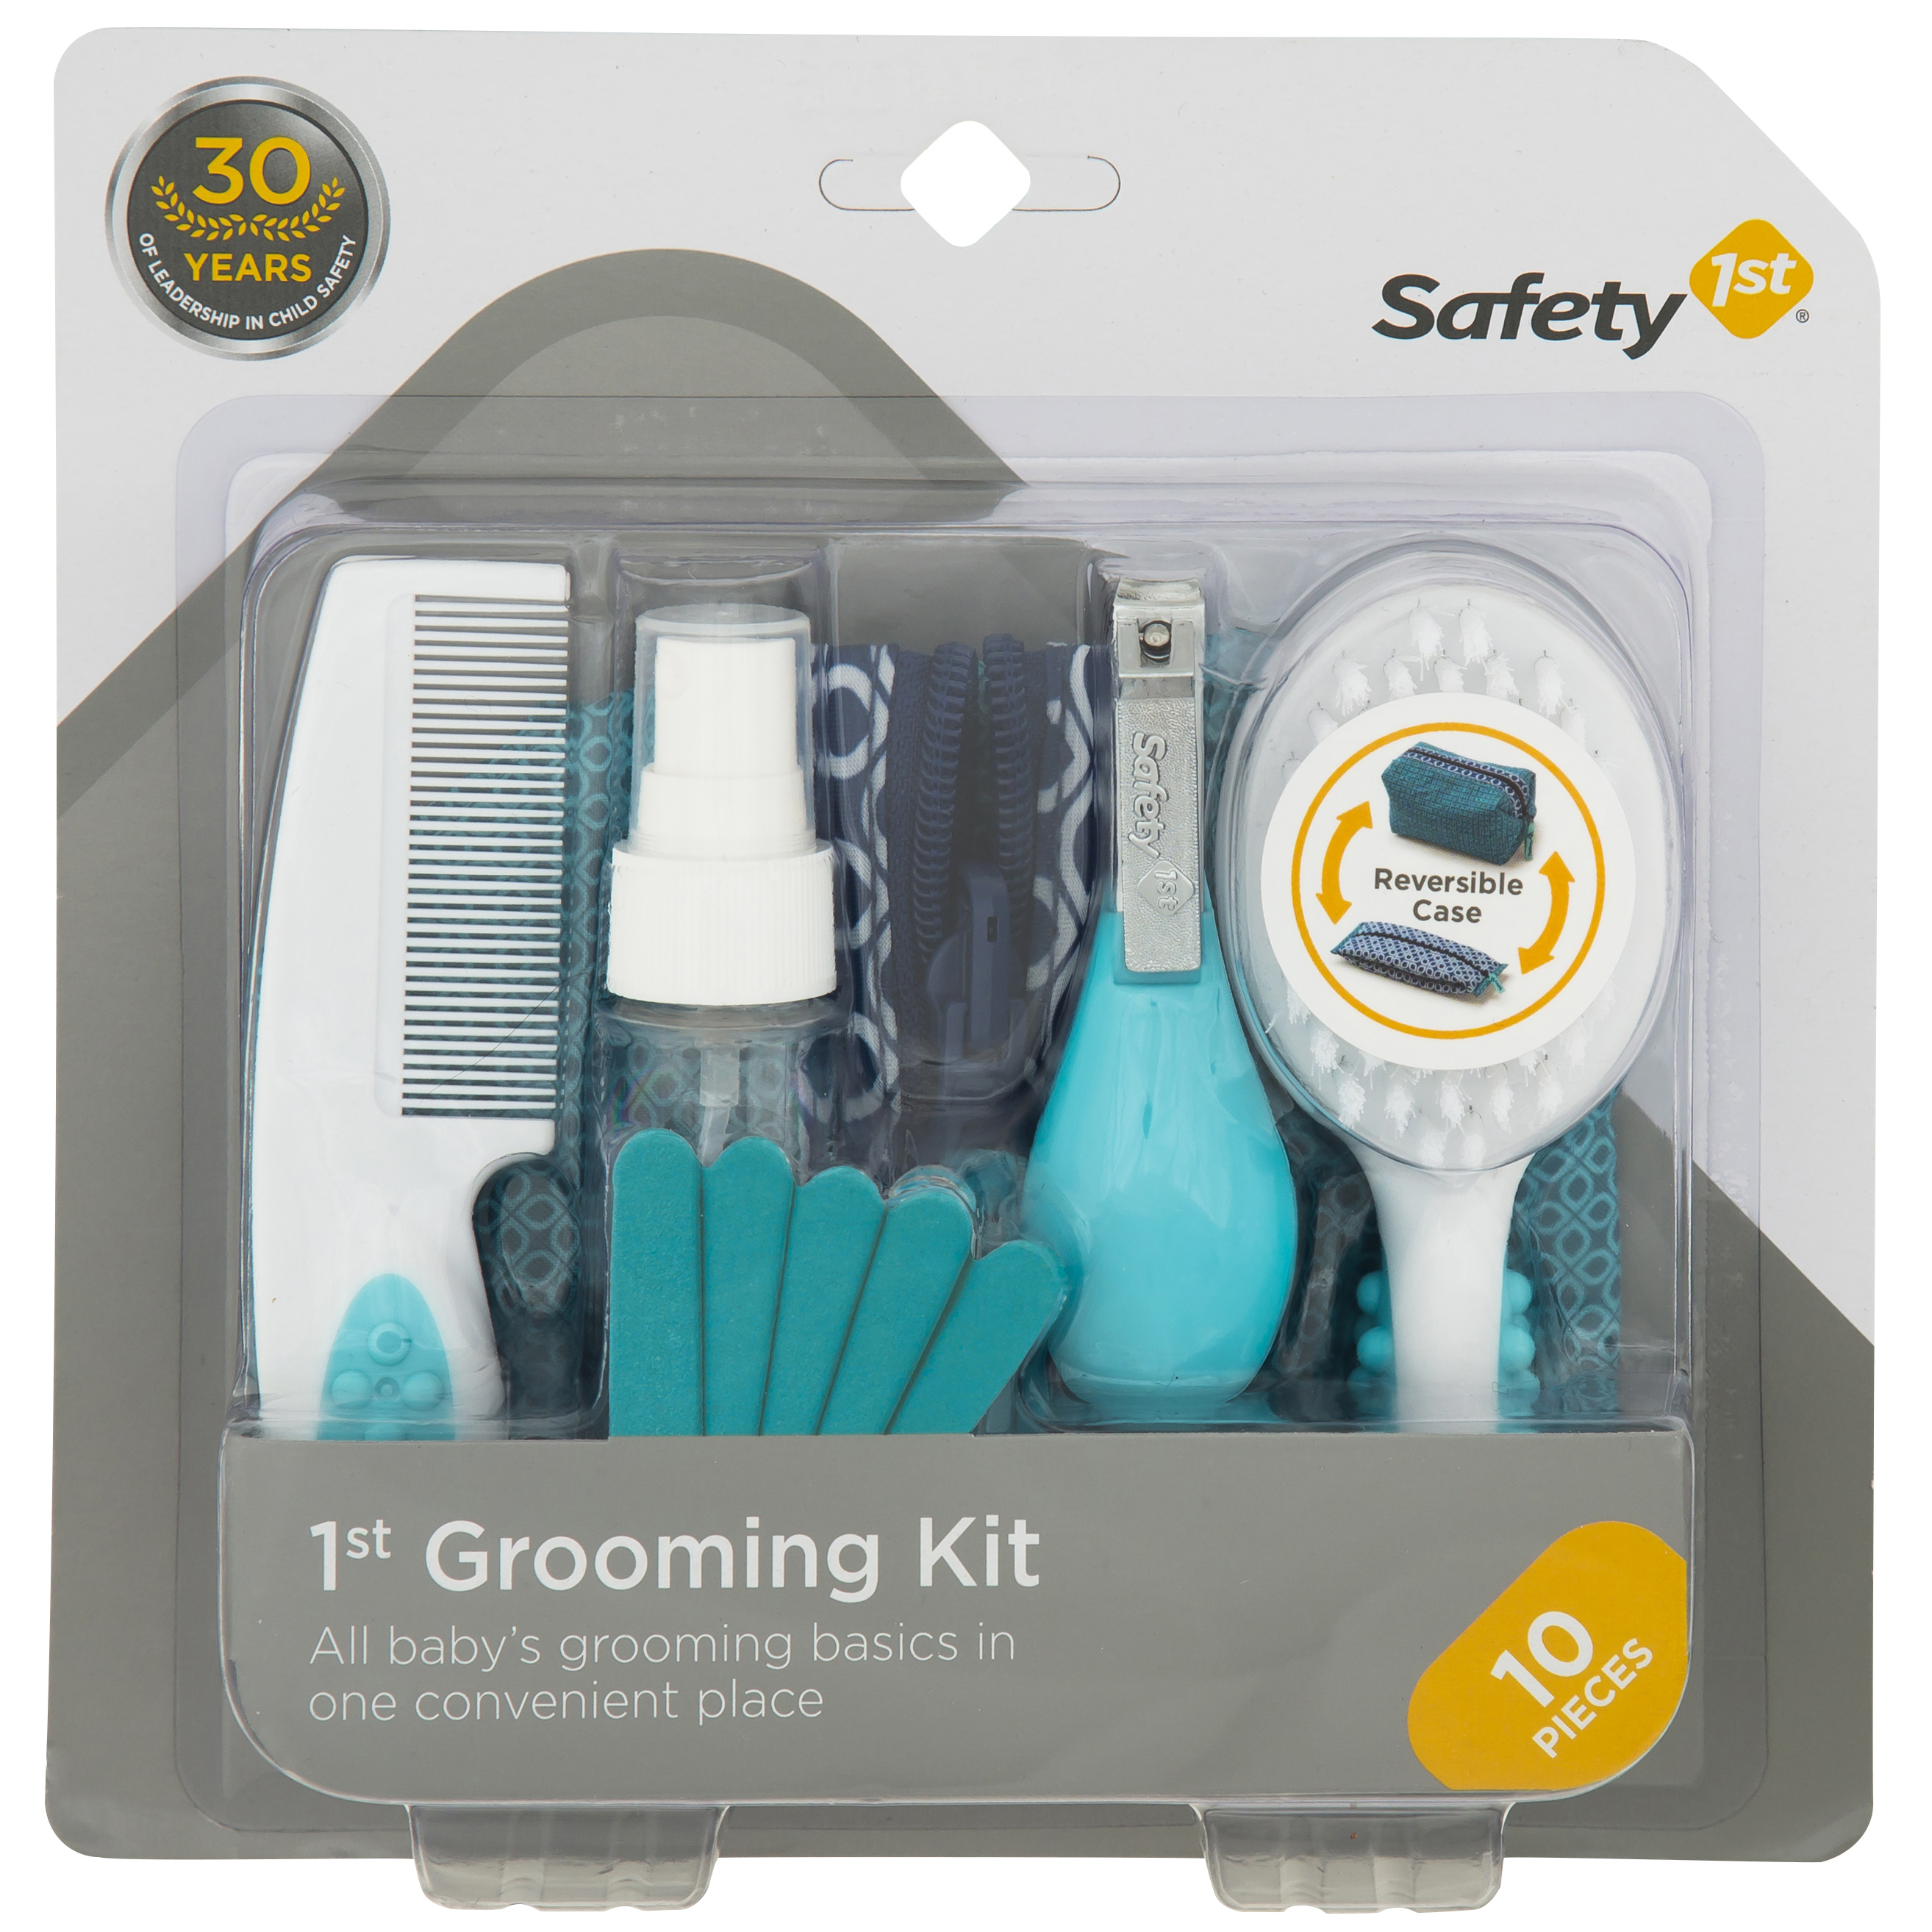 Safety 1st 1st Grooming Kit, Seville